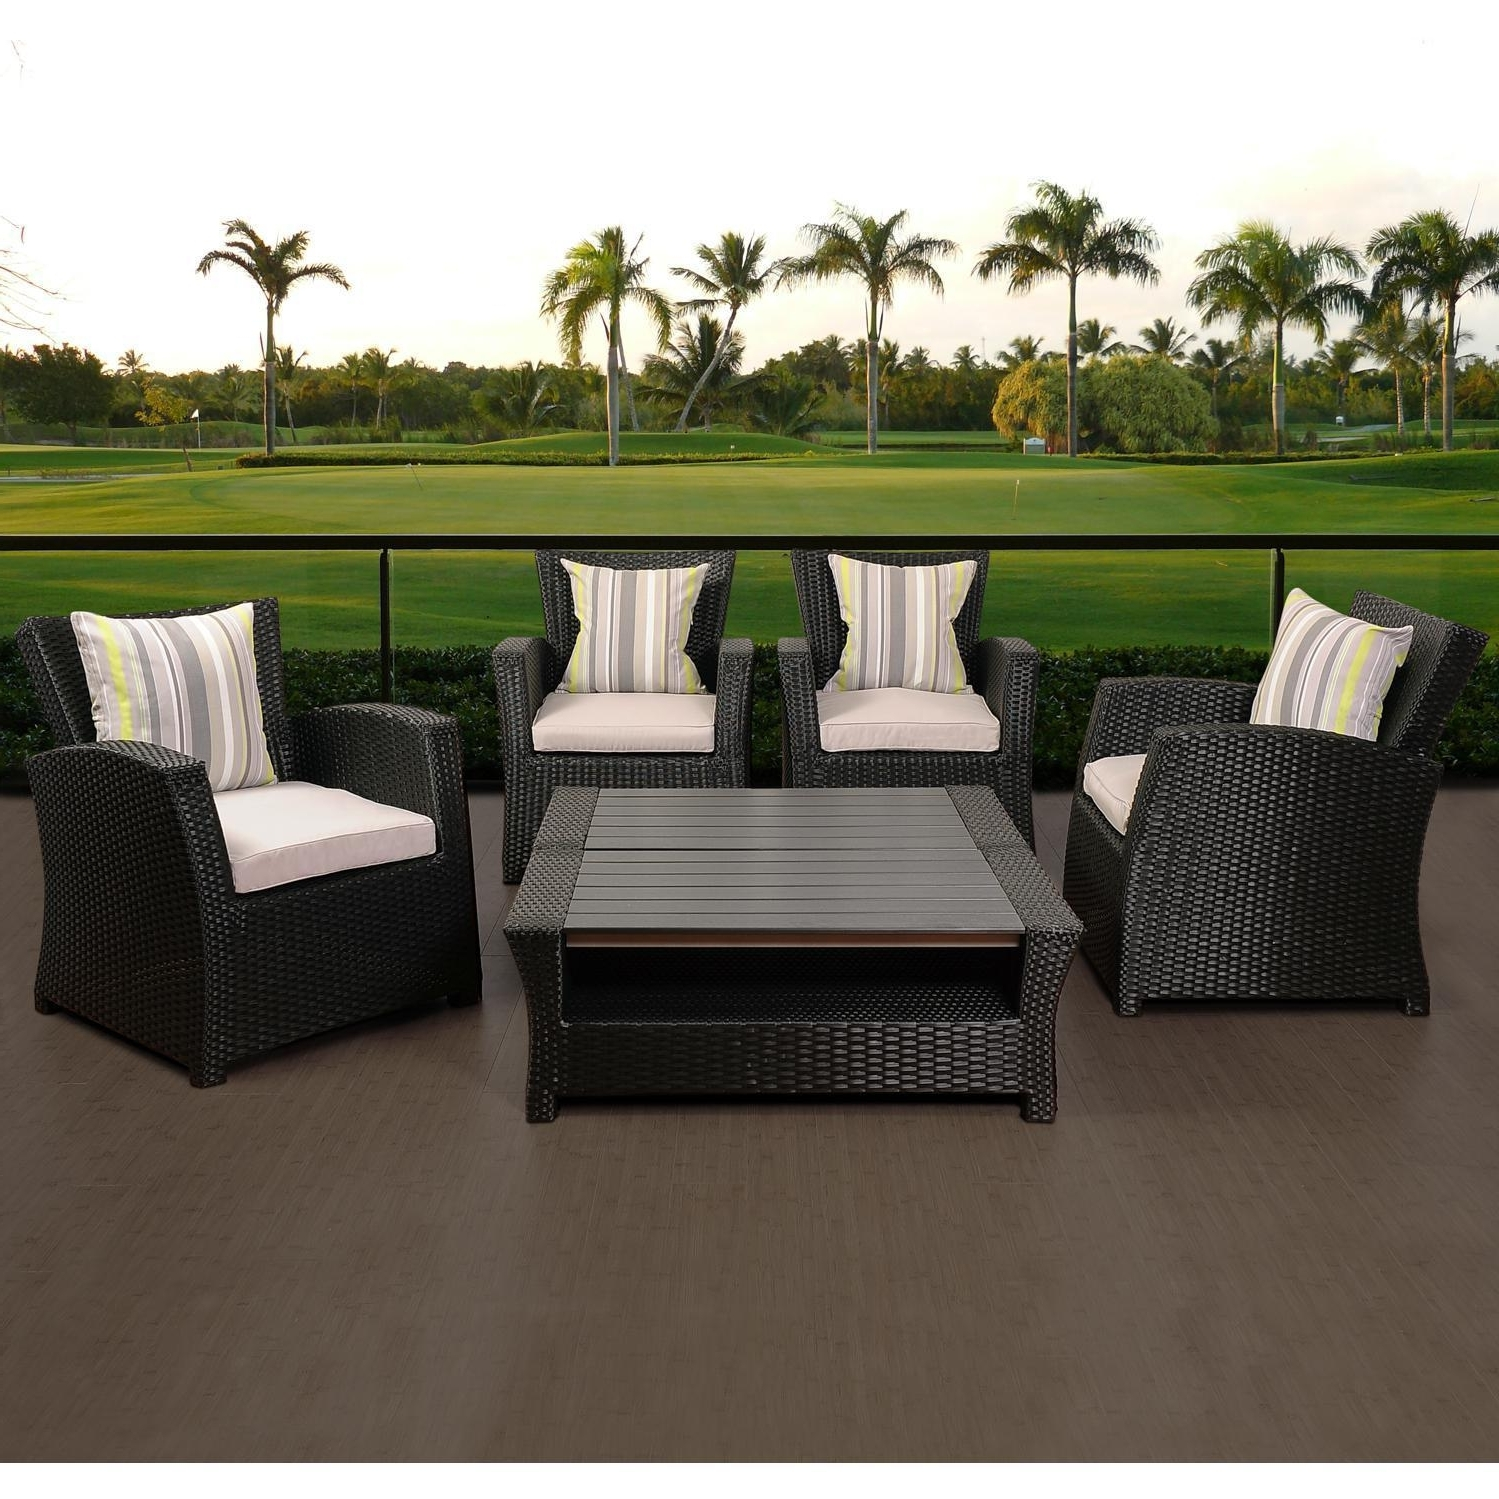 Newest Atlantic Staffordshire 4 Person Resin Wicker Patio Conversation Set Pertaining To Resin Conversation Patio Sets (View 10 of 15)